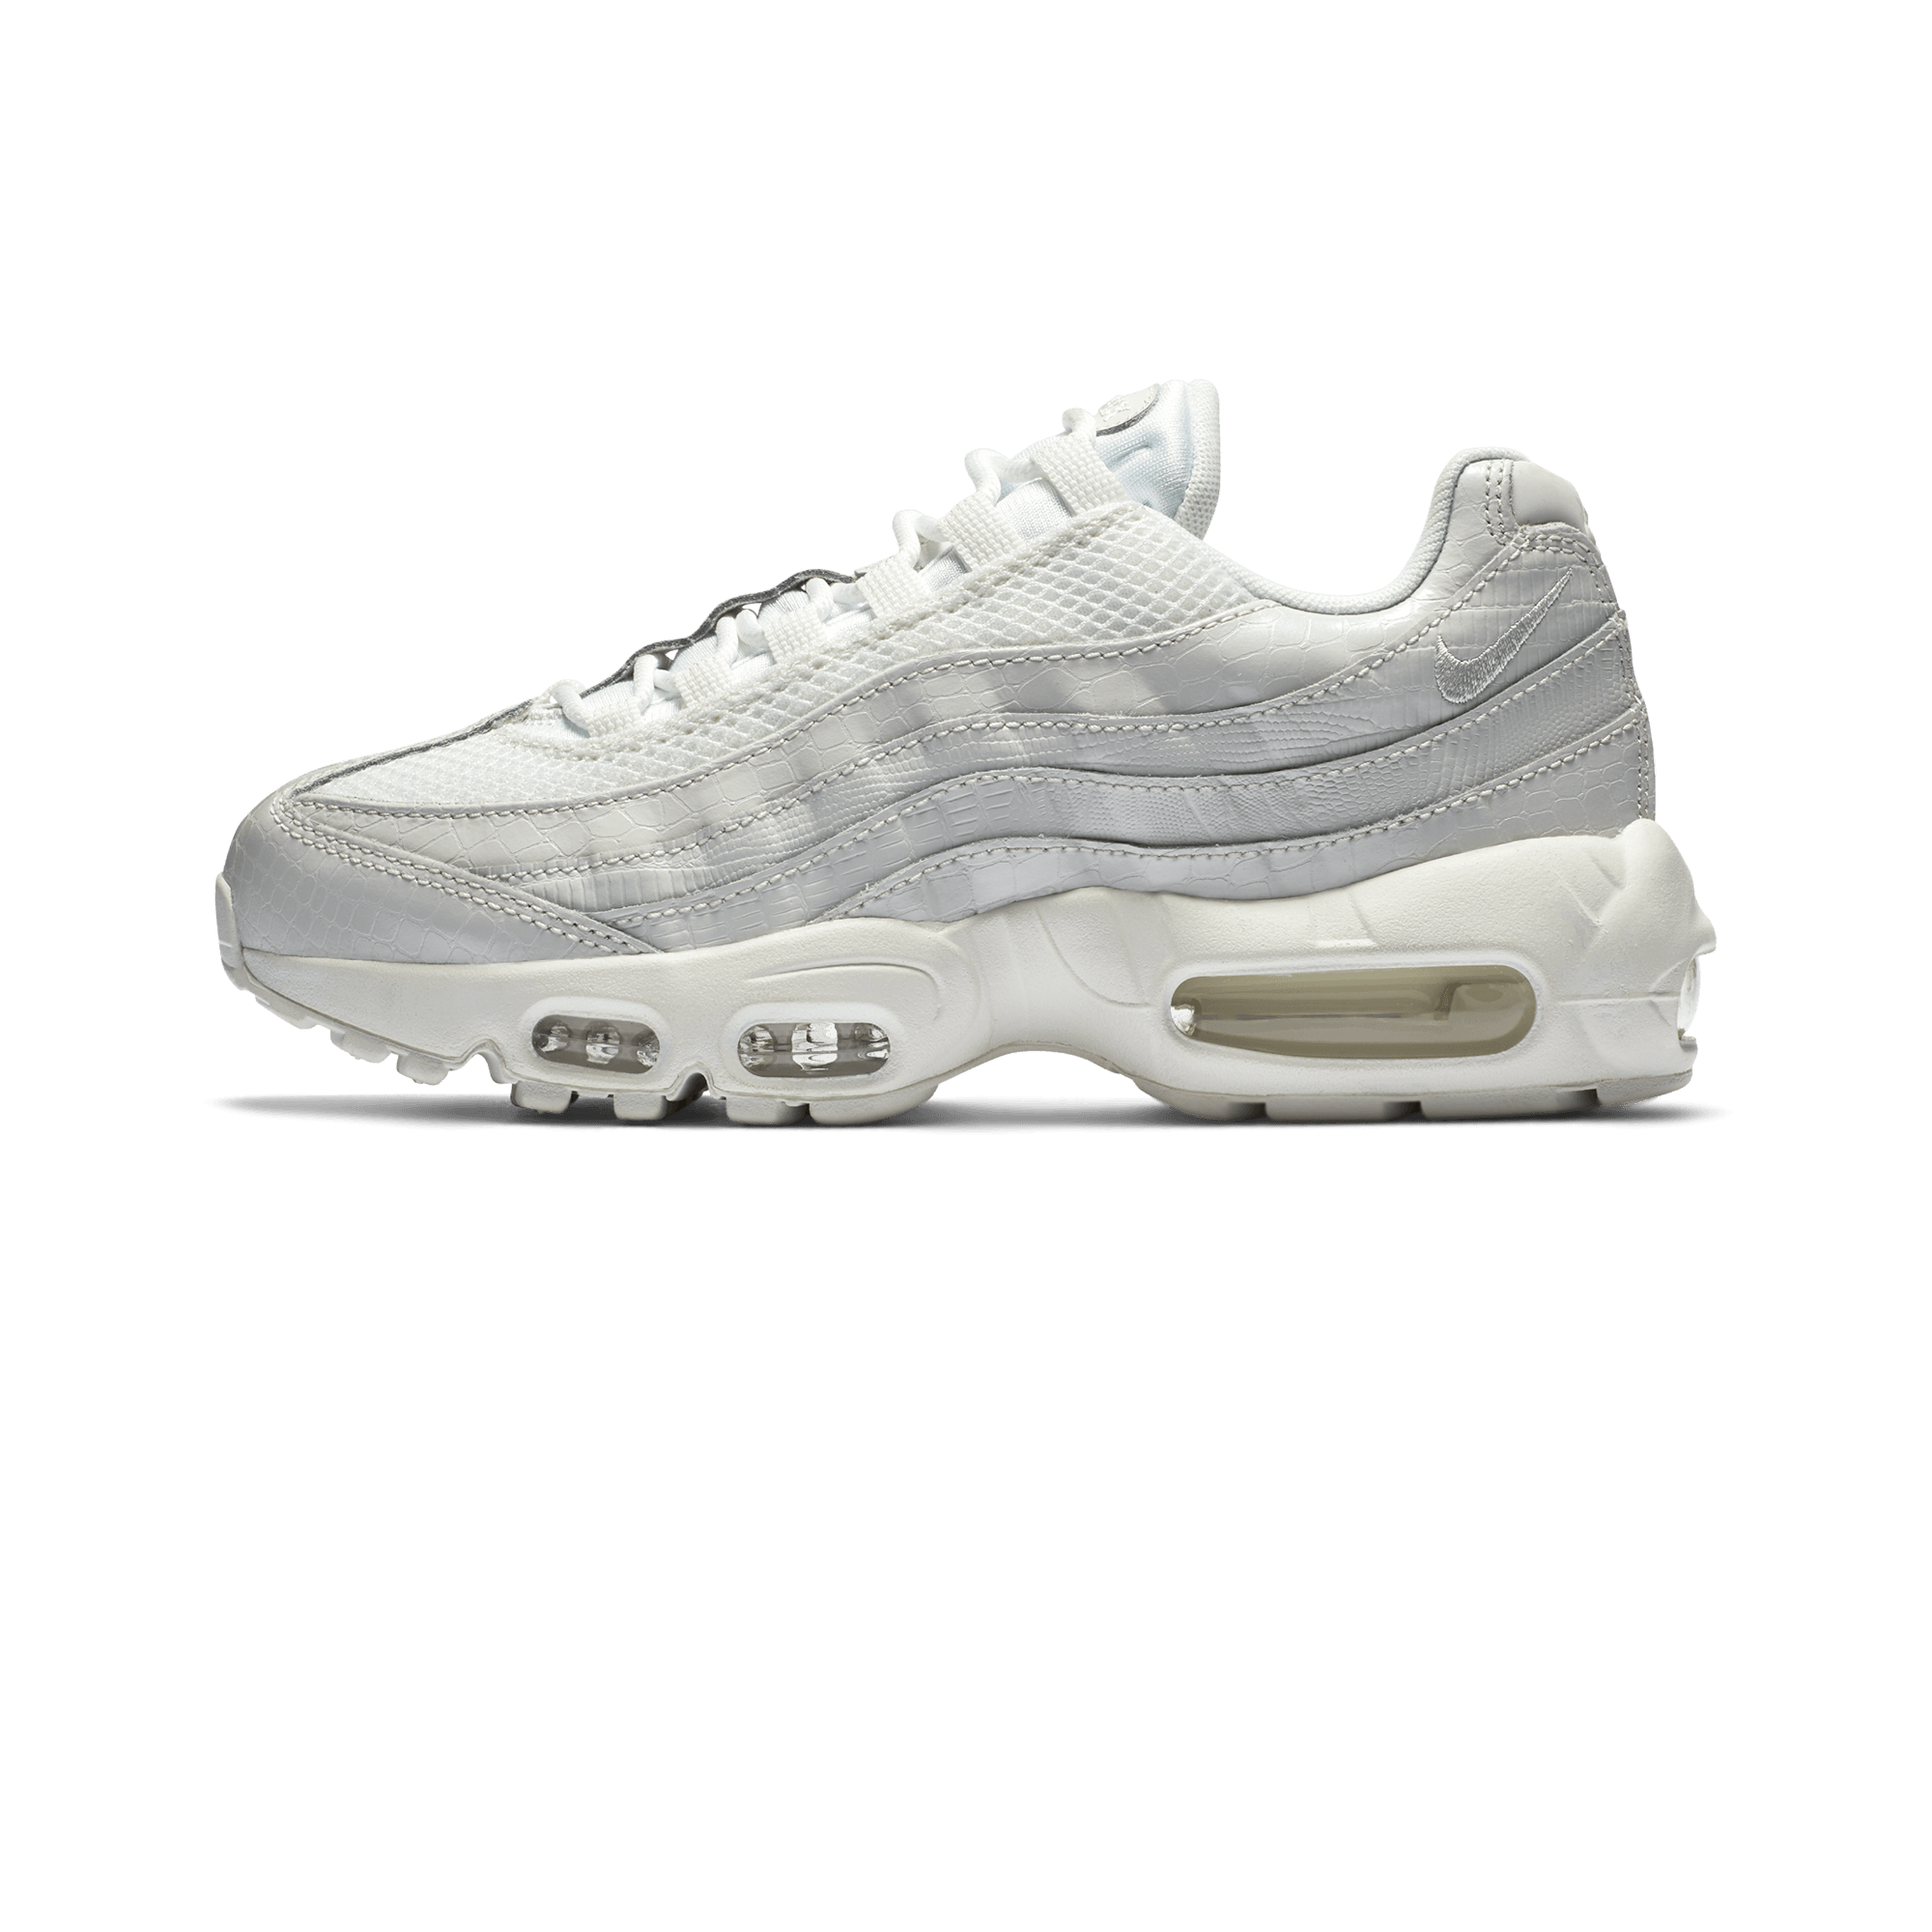 Nike Air Max 95 PRM W summit white vast grey Woman |